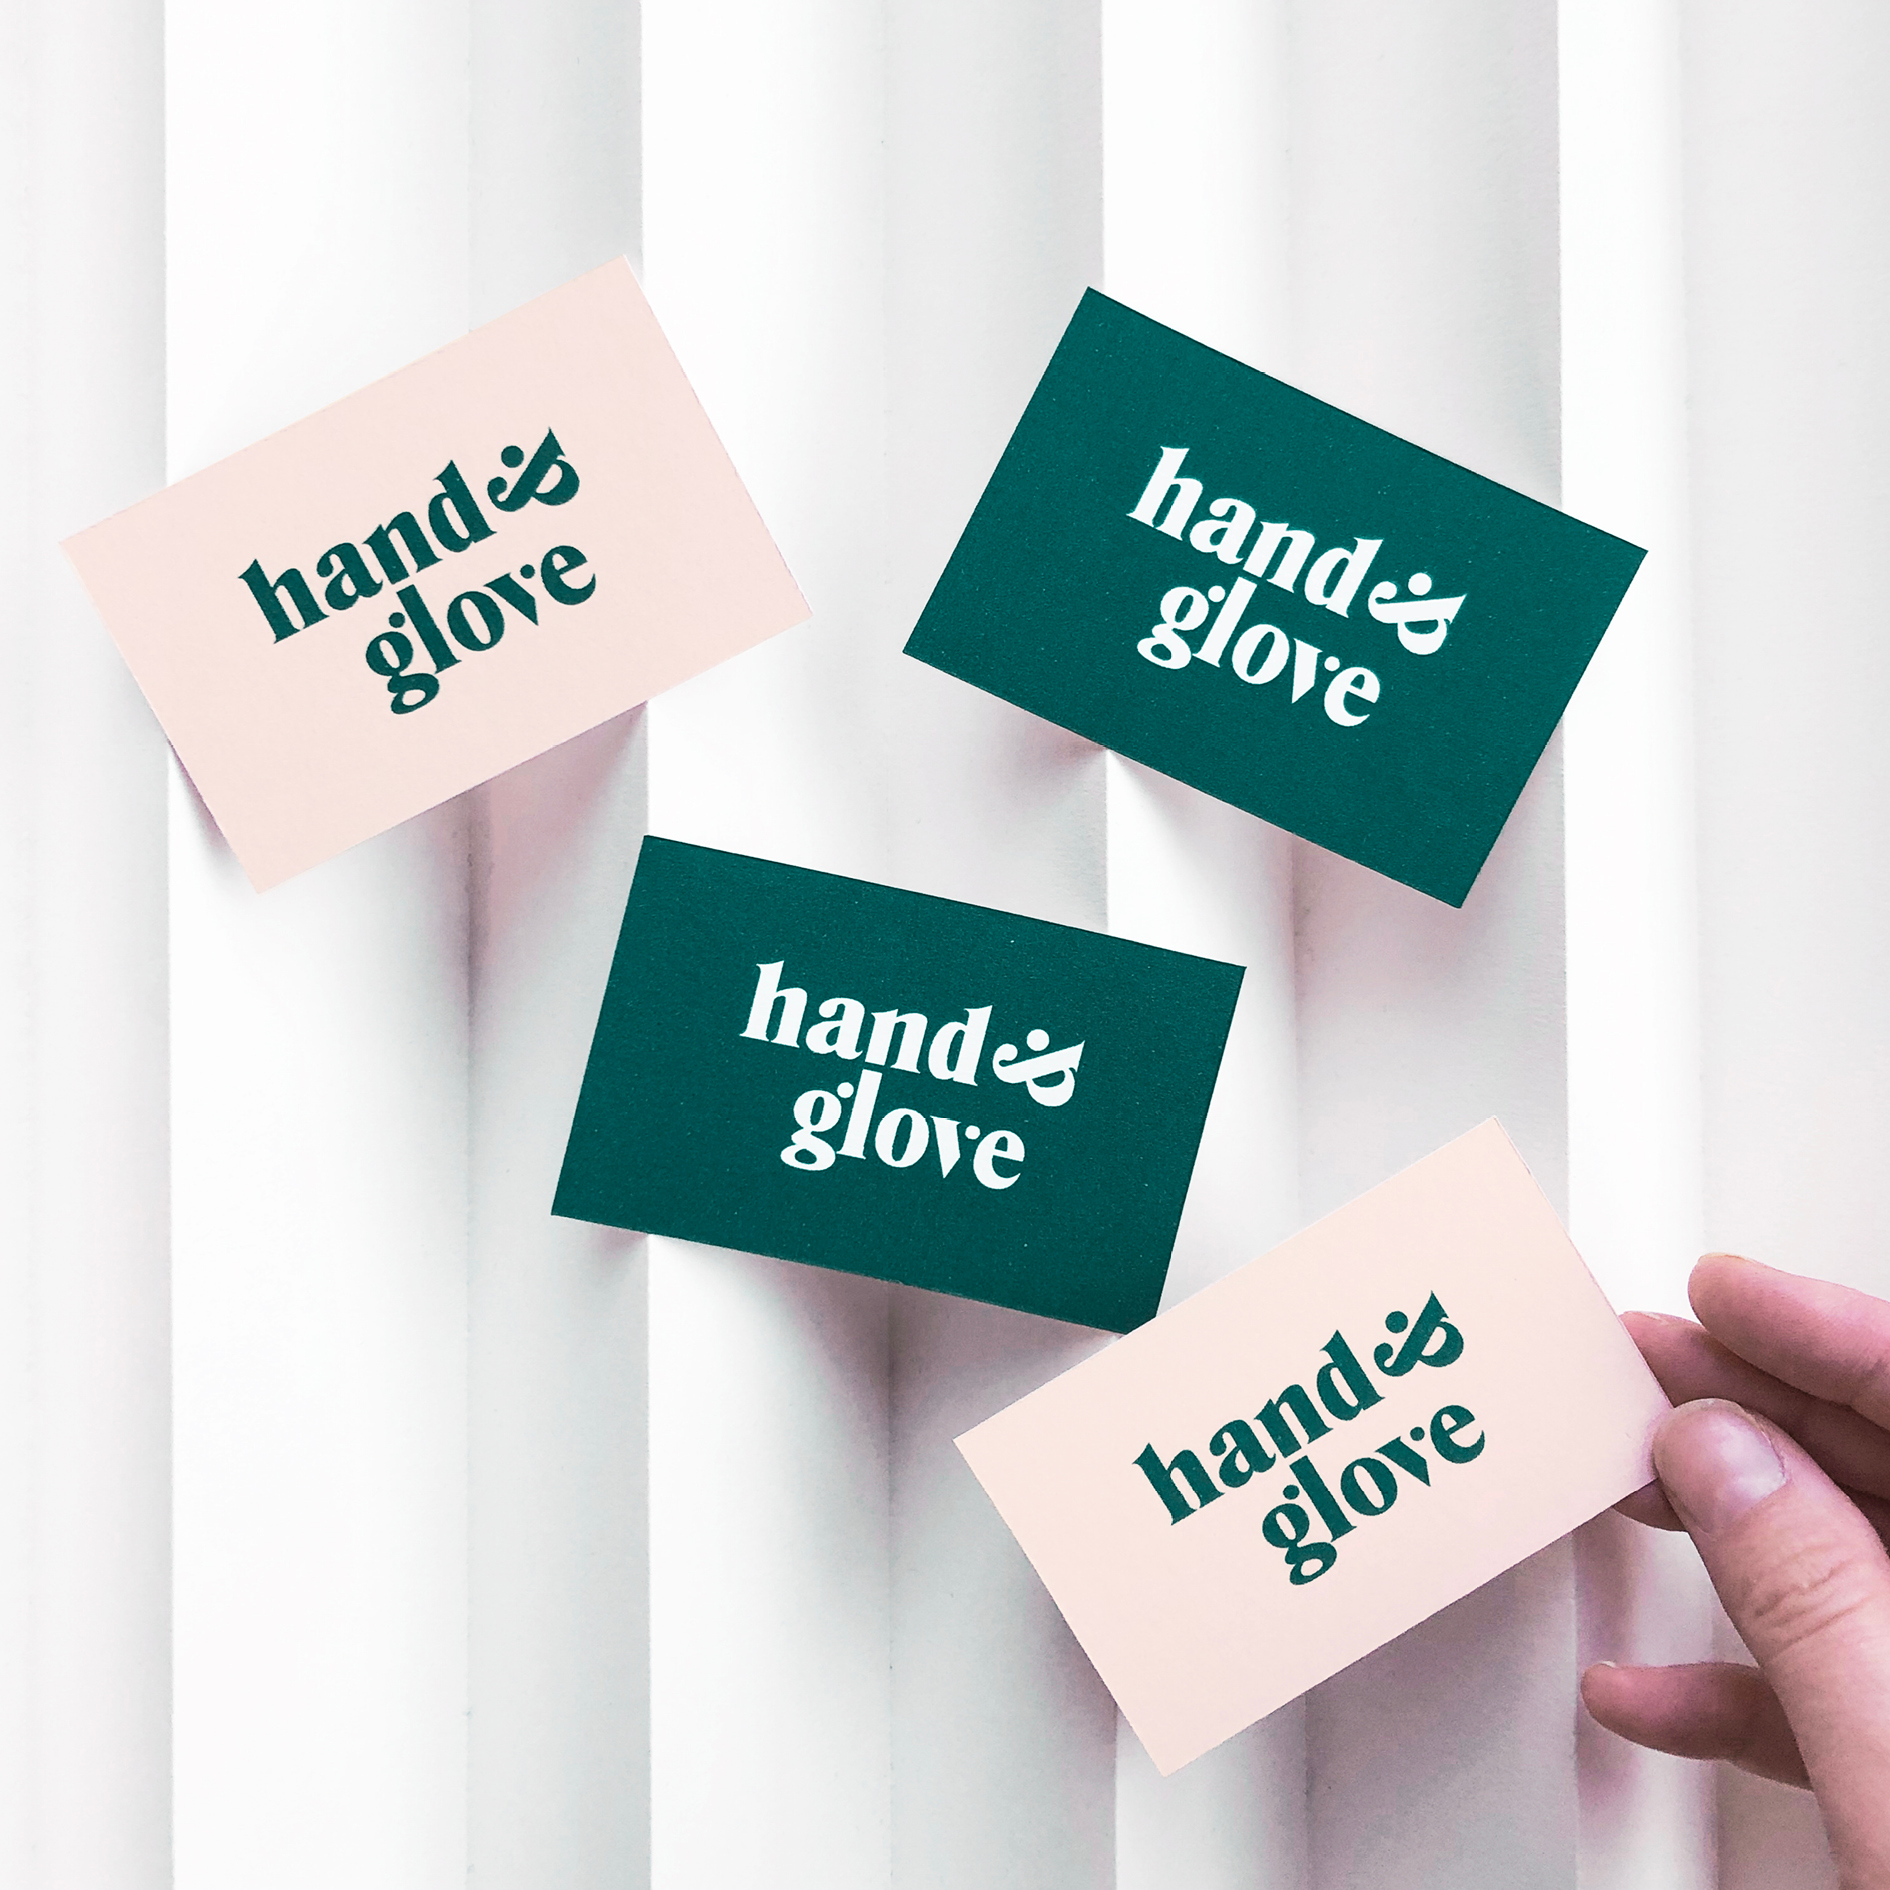 Hands&Glove business card